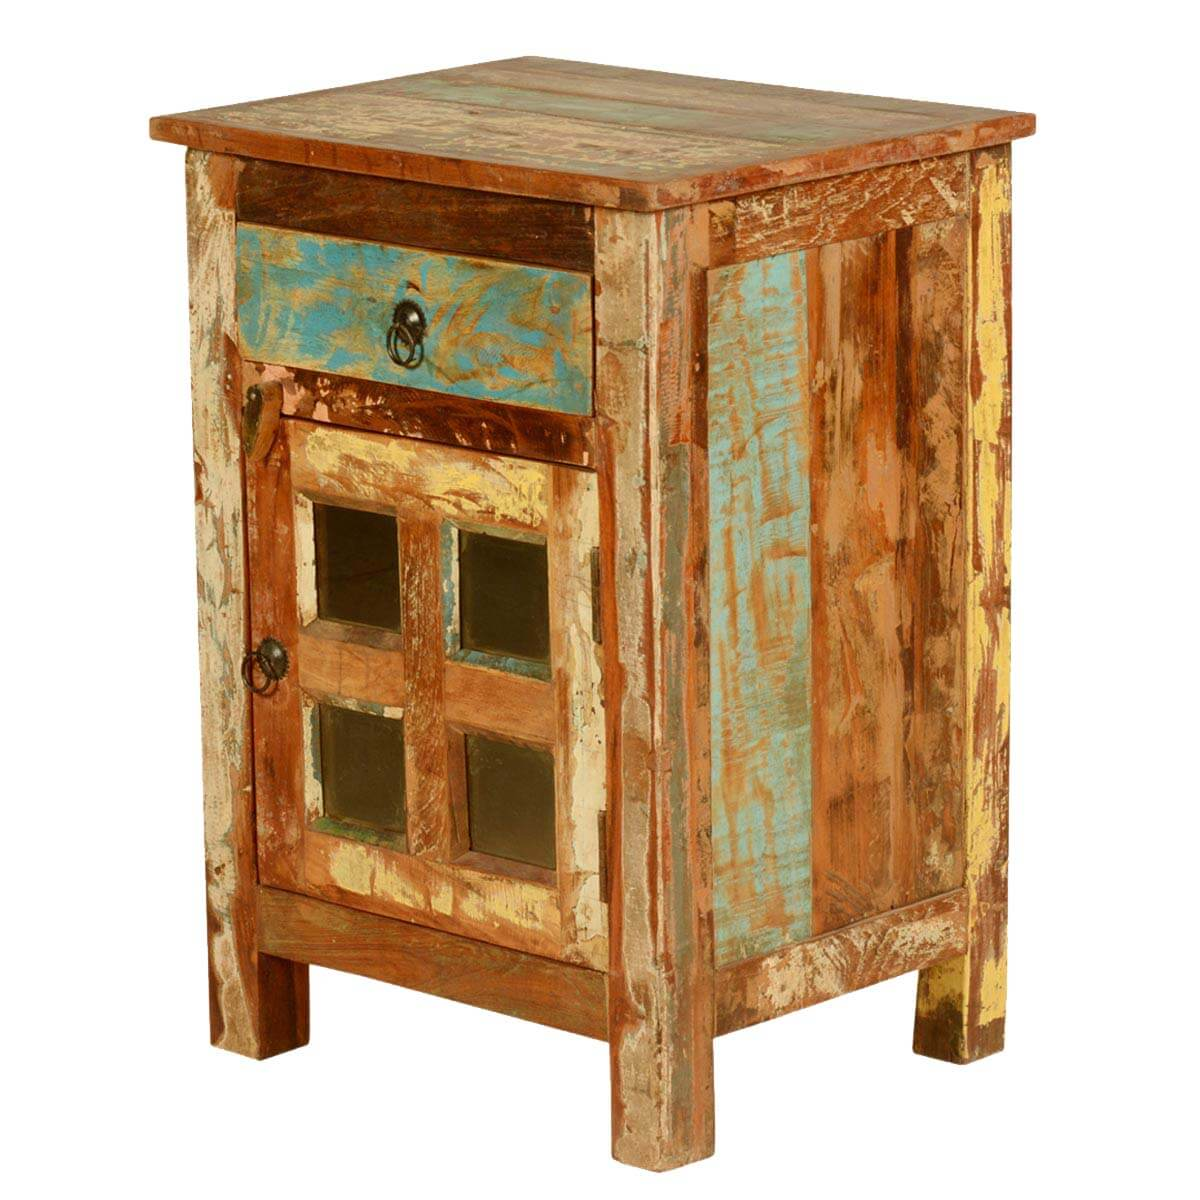 Rustic window pane door reclaimed wood nightstand end table